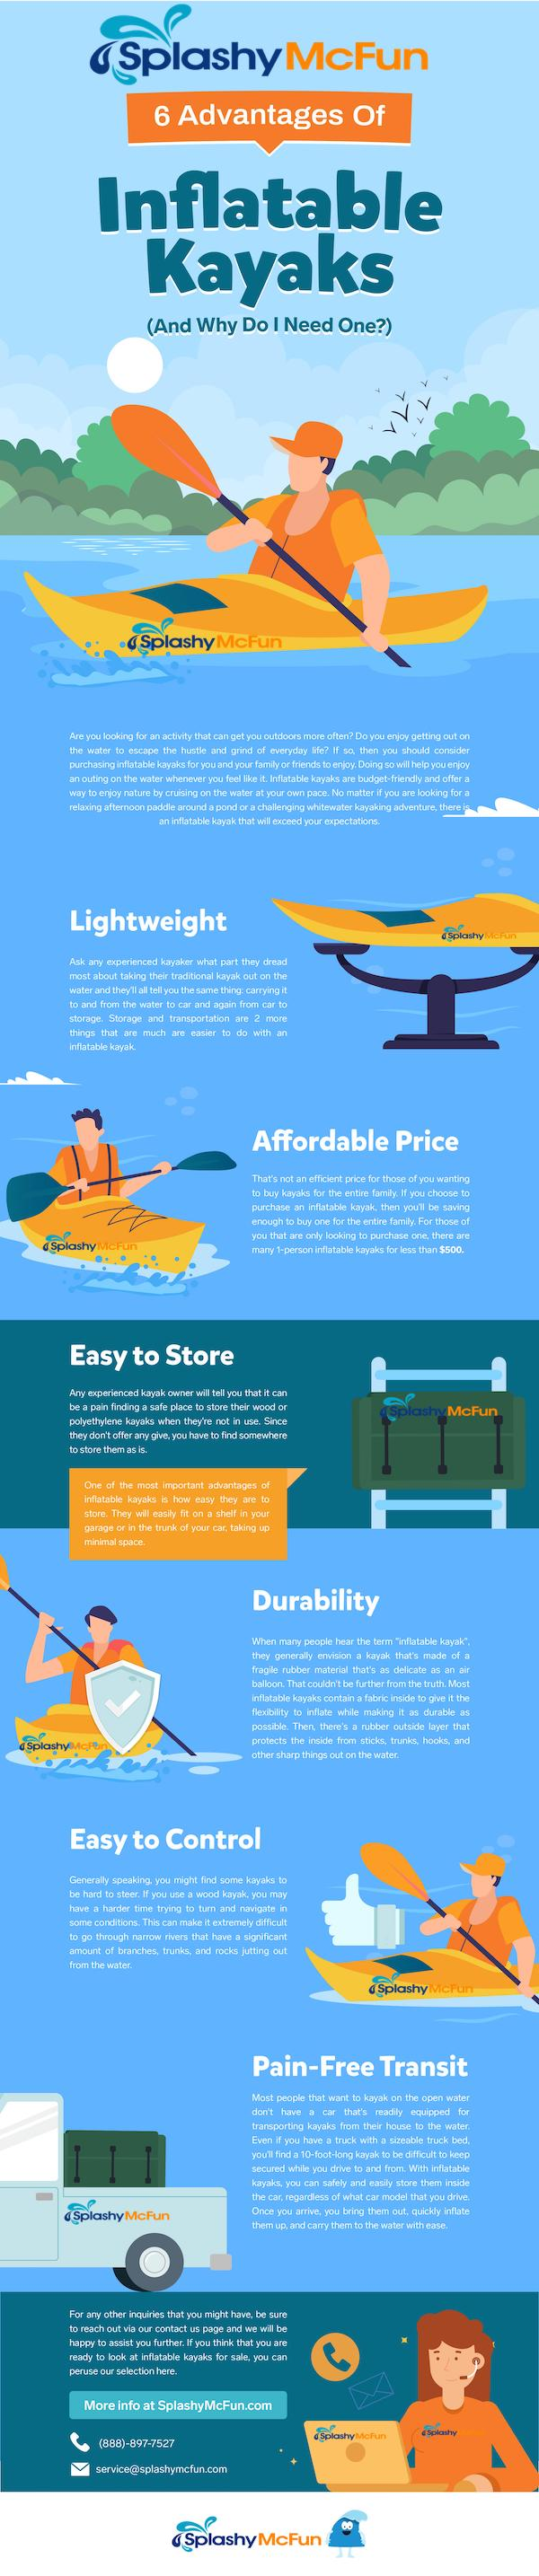 6 Advantages of Inflatable Kayaks Infographic